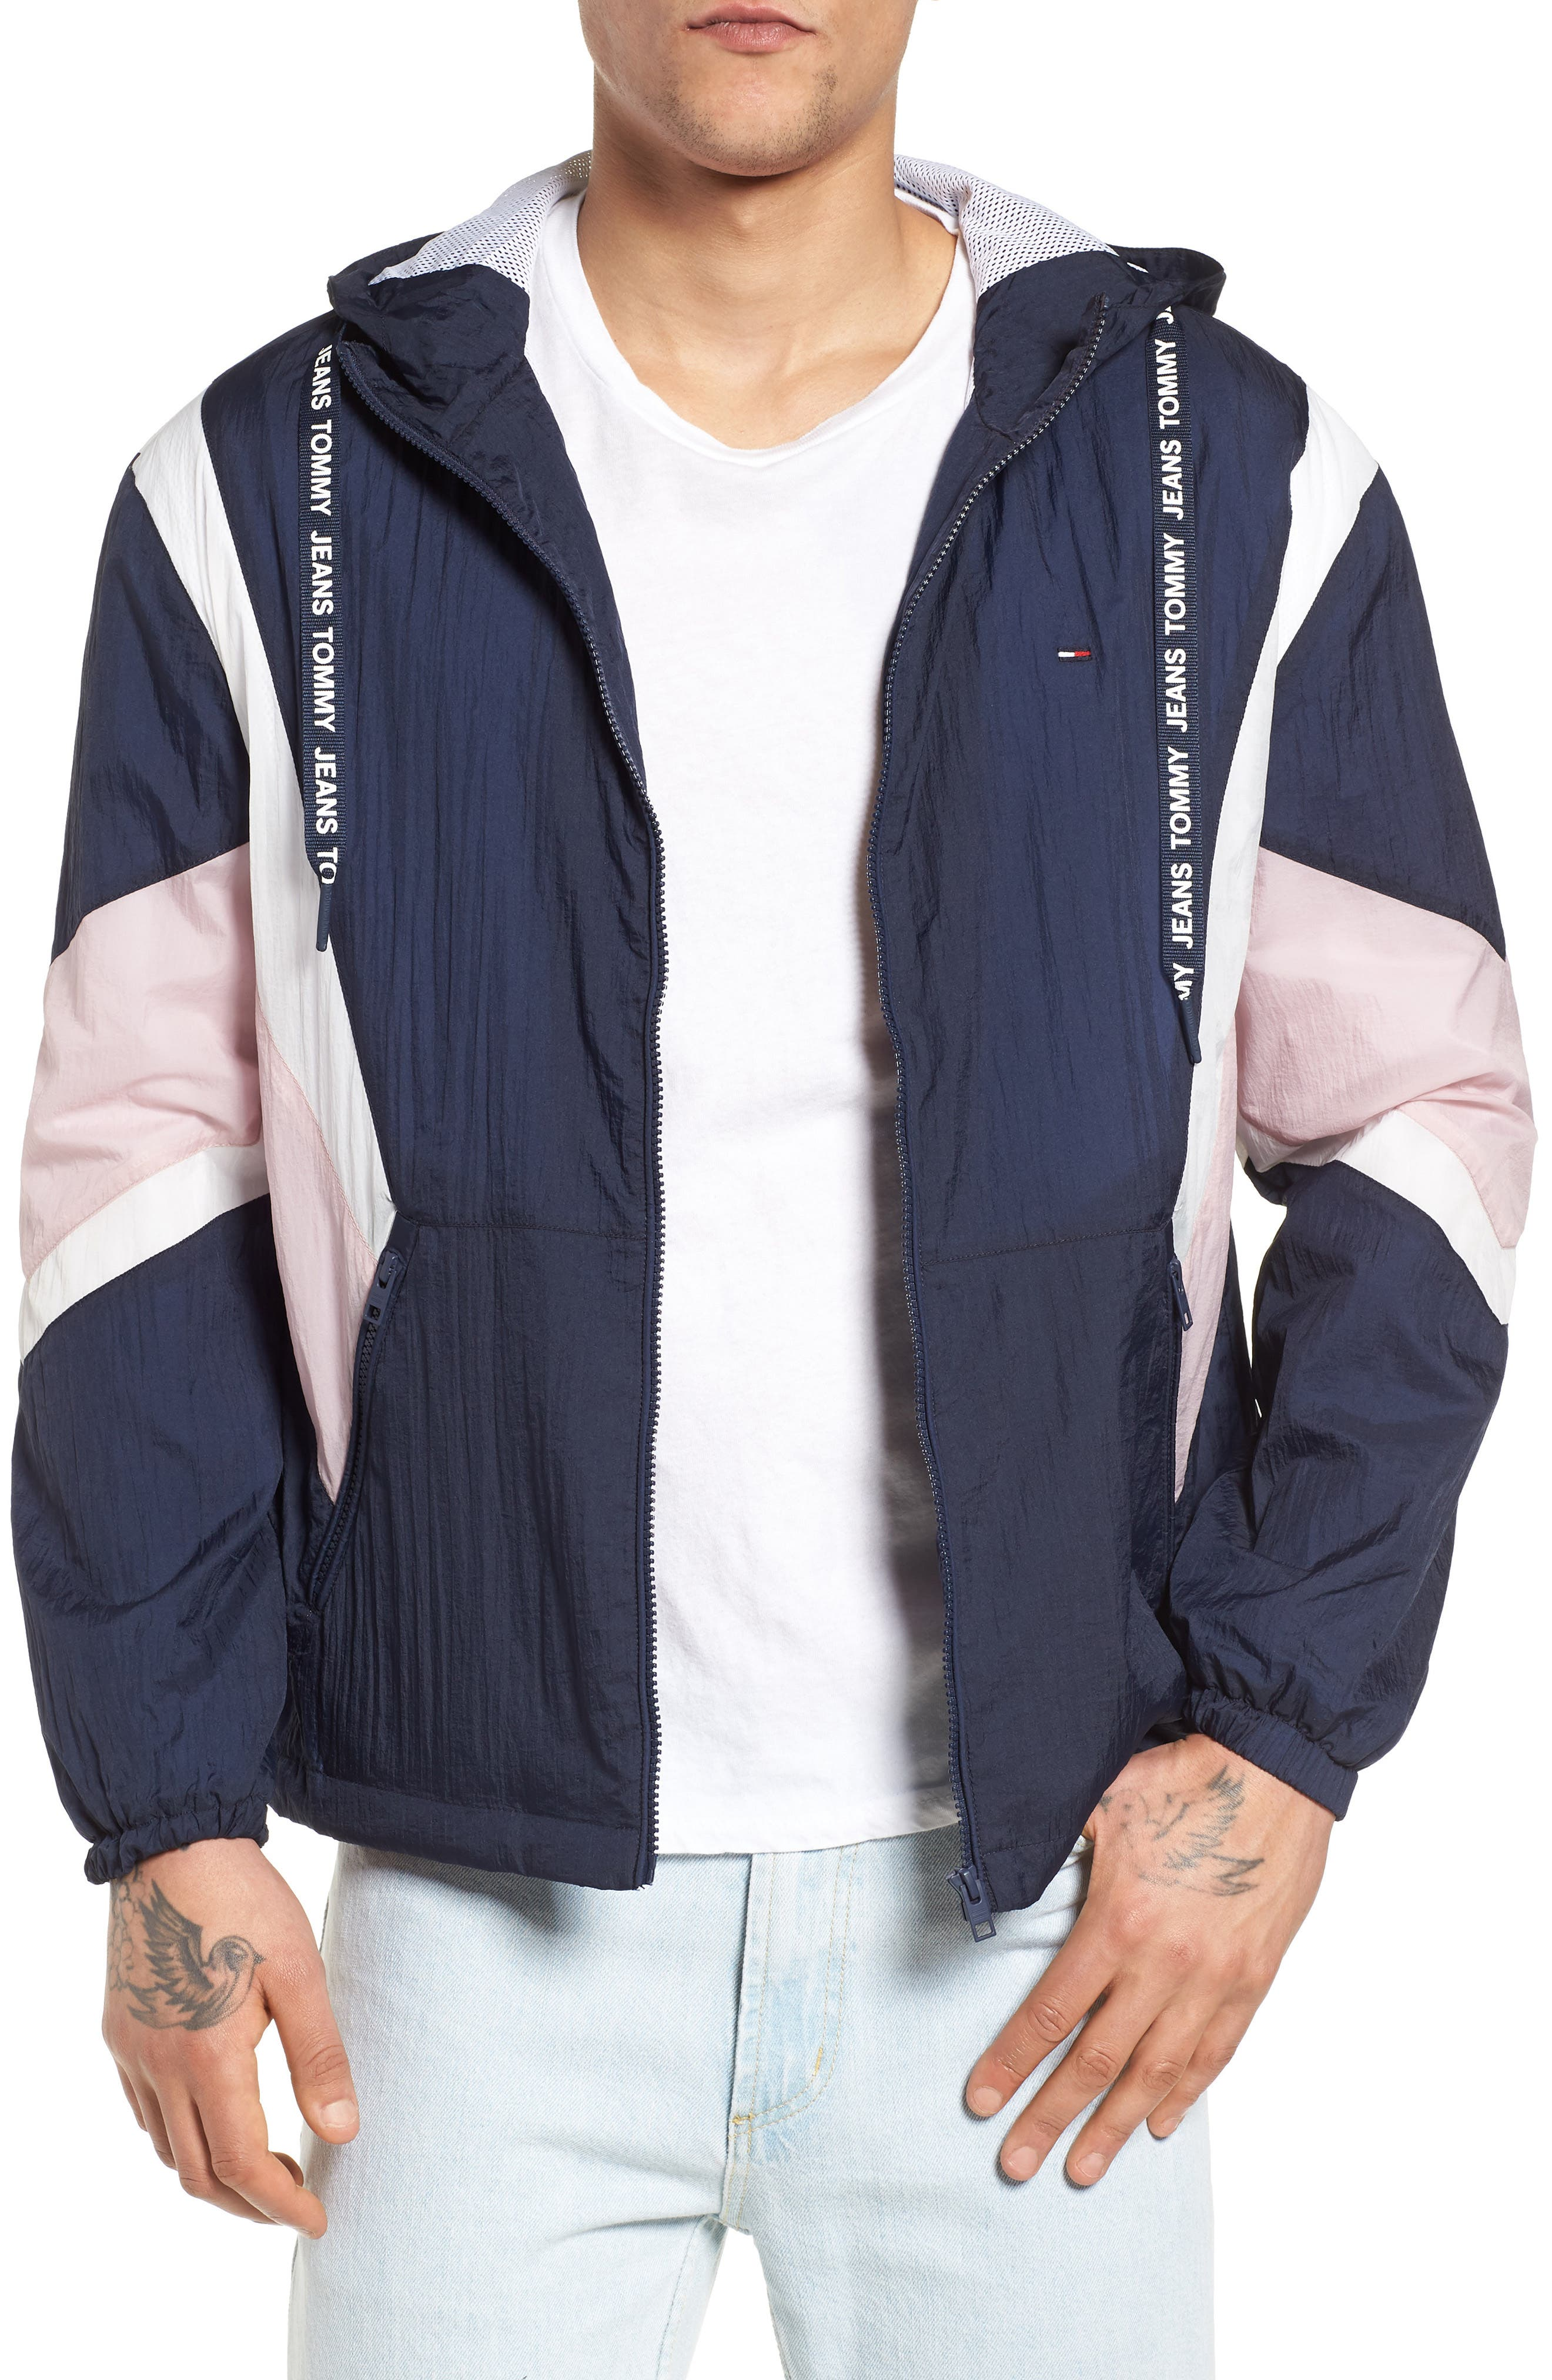 Drop Shoulder Athletic Jacket by Tommy Jeans